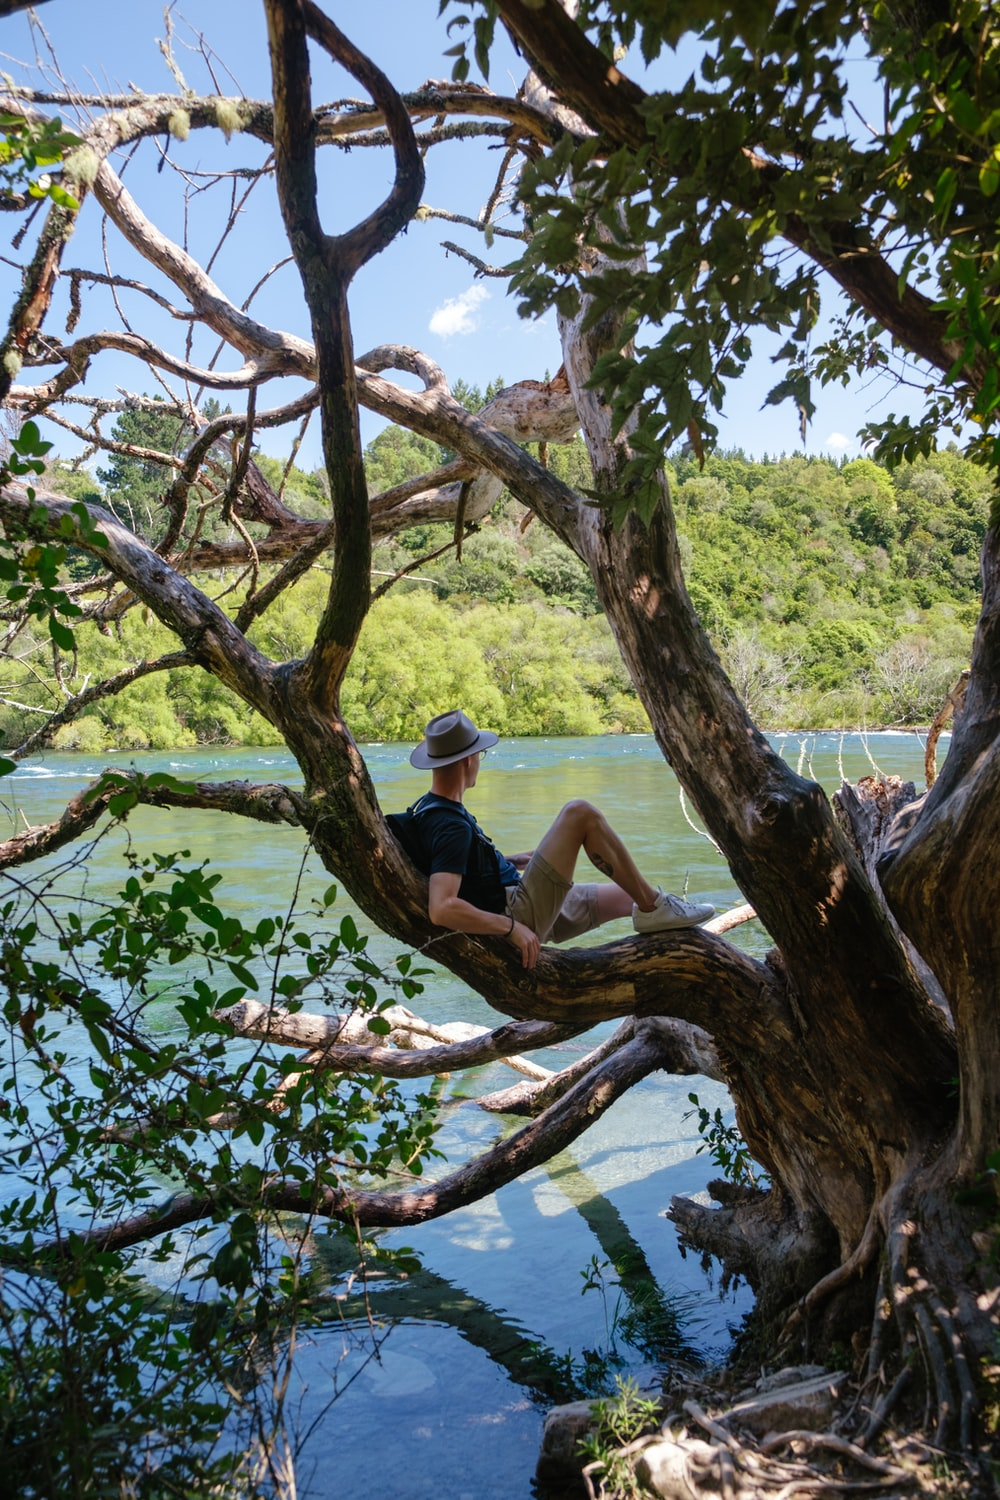 man in blue t-shirt sitting on tree branch during daytime